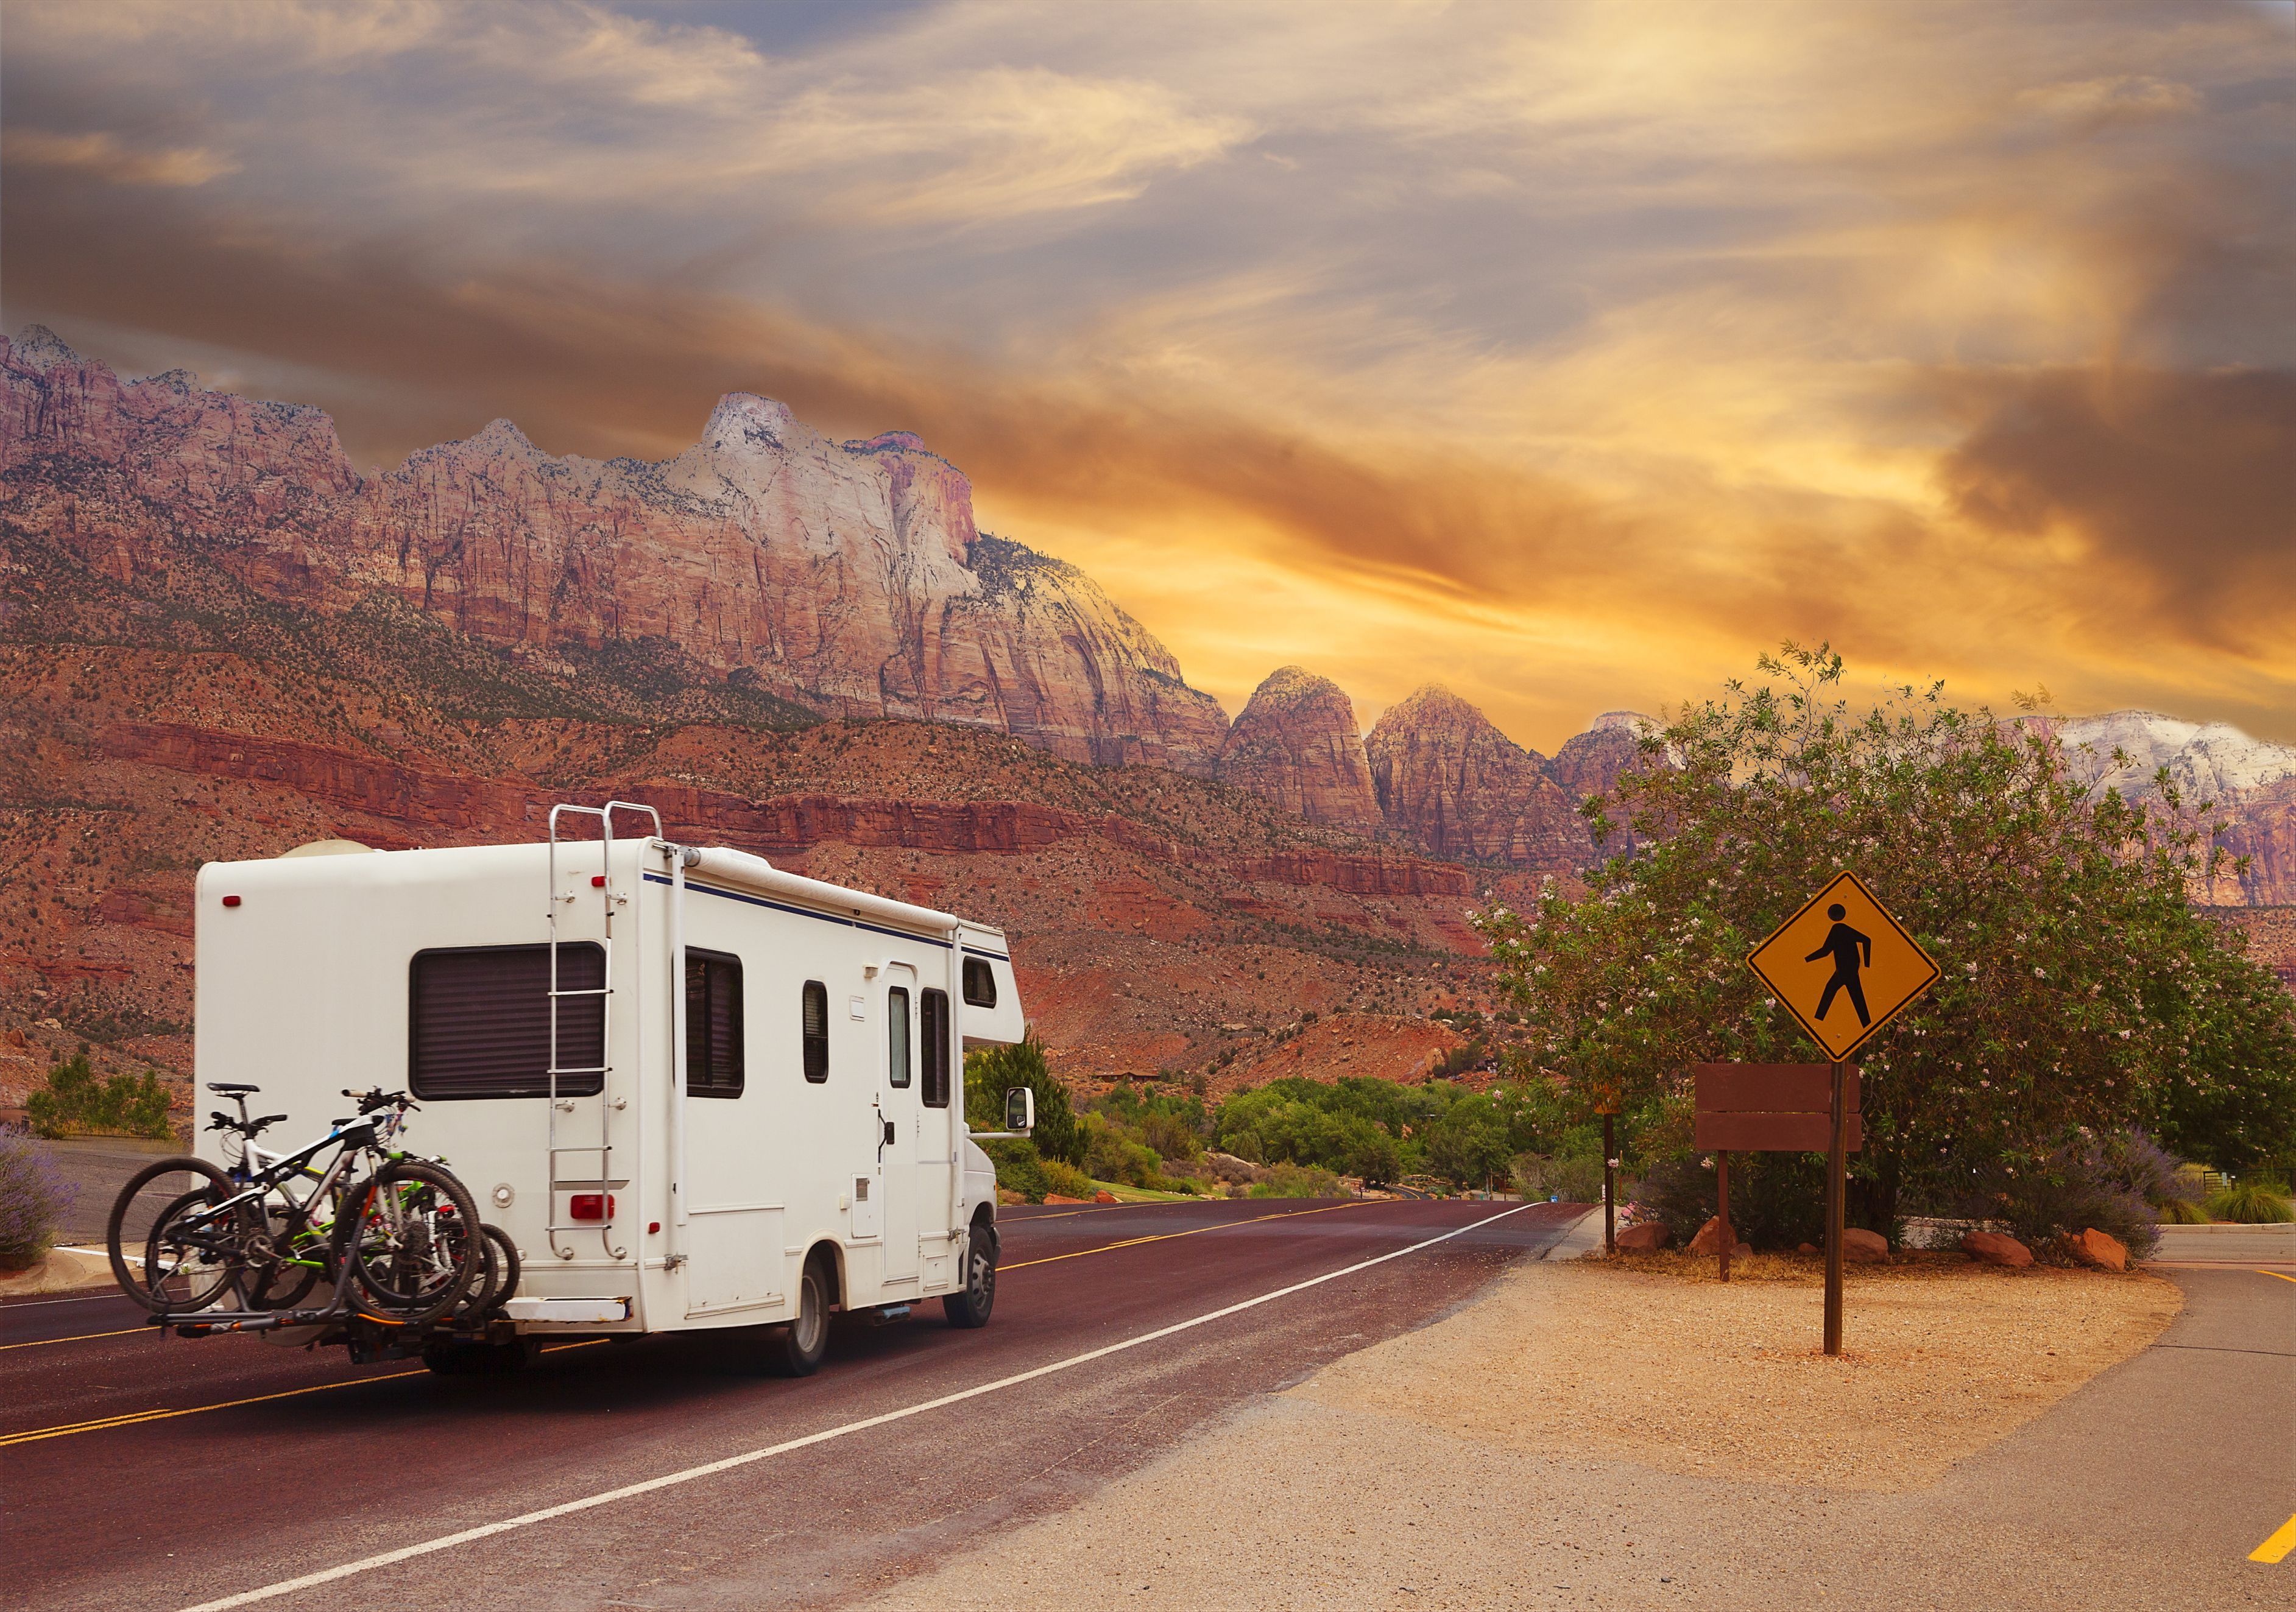 10 Safety Tips for Planning an RV Trip